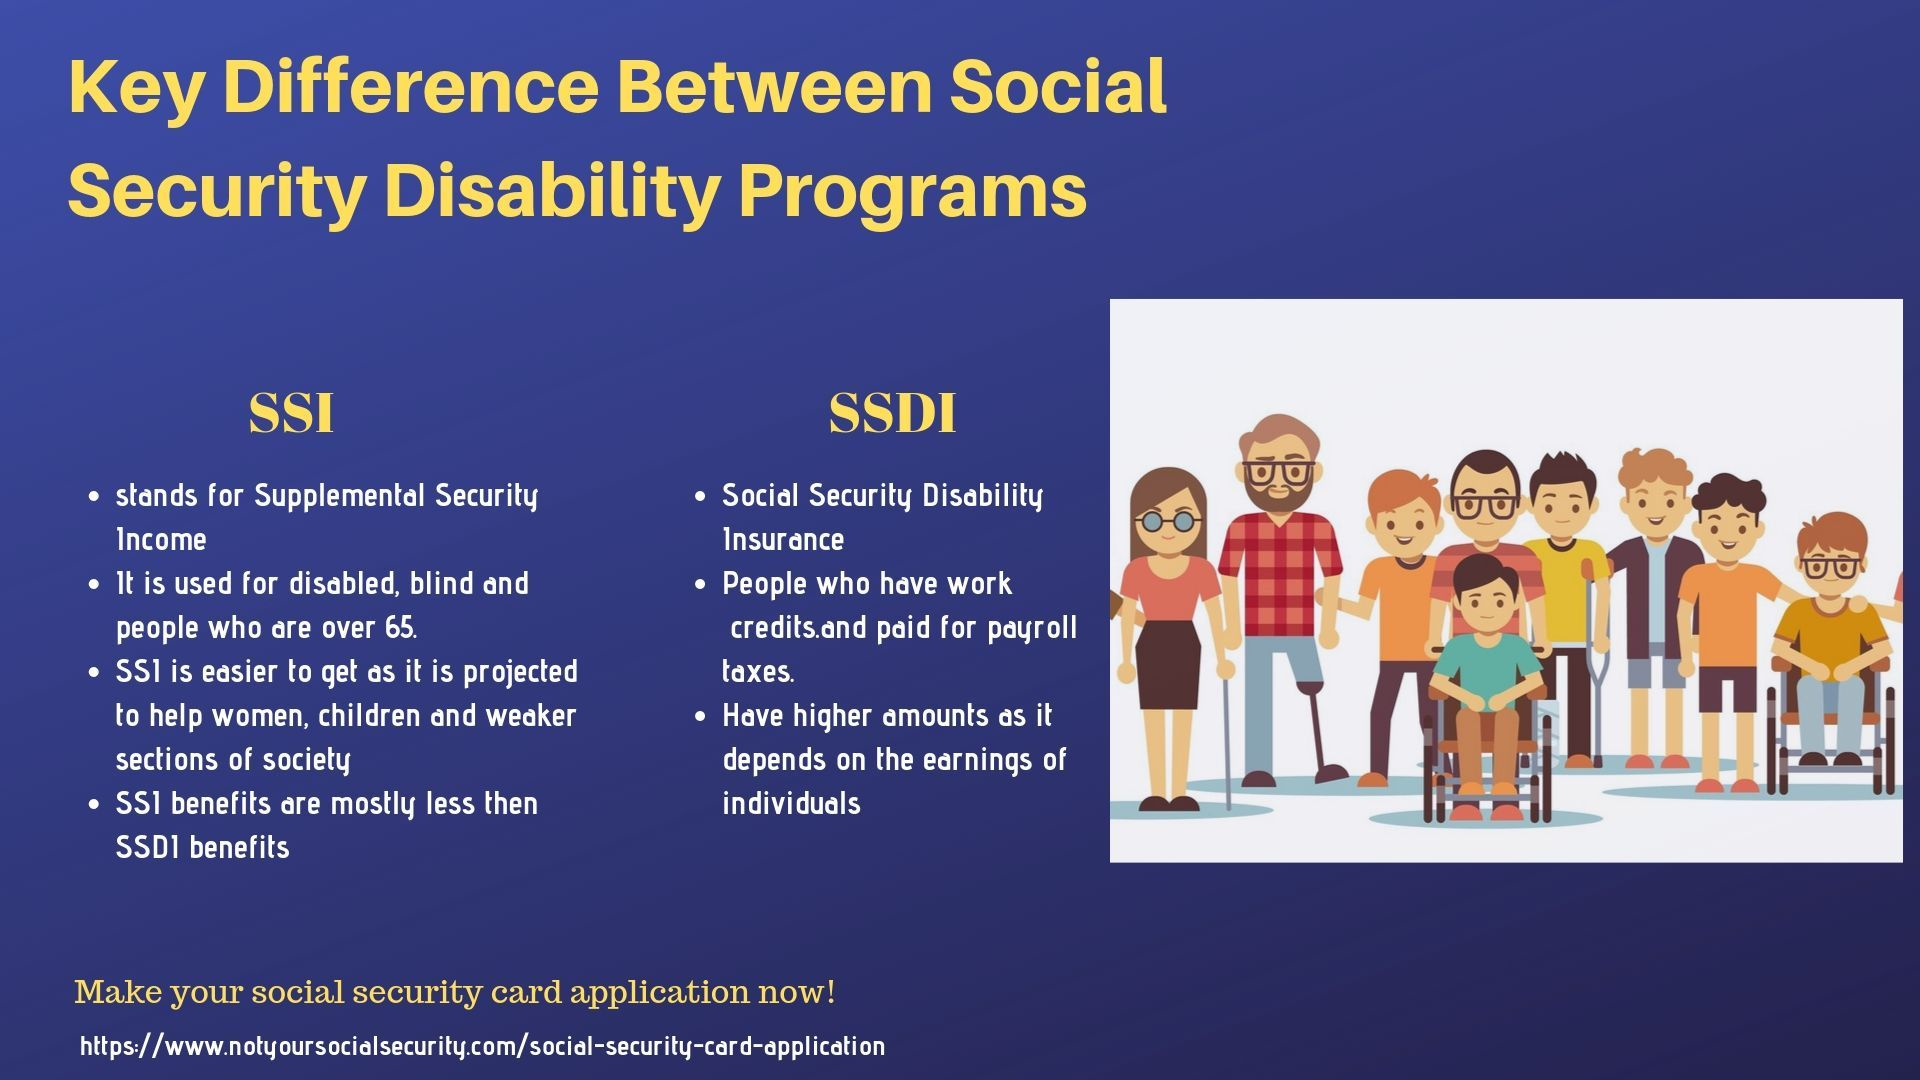 Submit Social Security Card Application Know Disability Benefits Social Security Card Social Social Security Disability